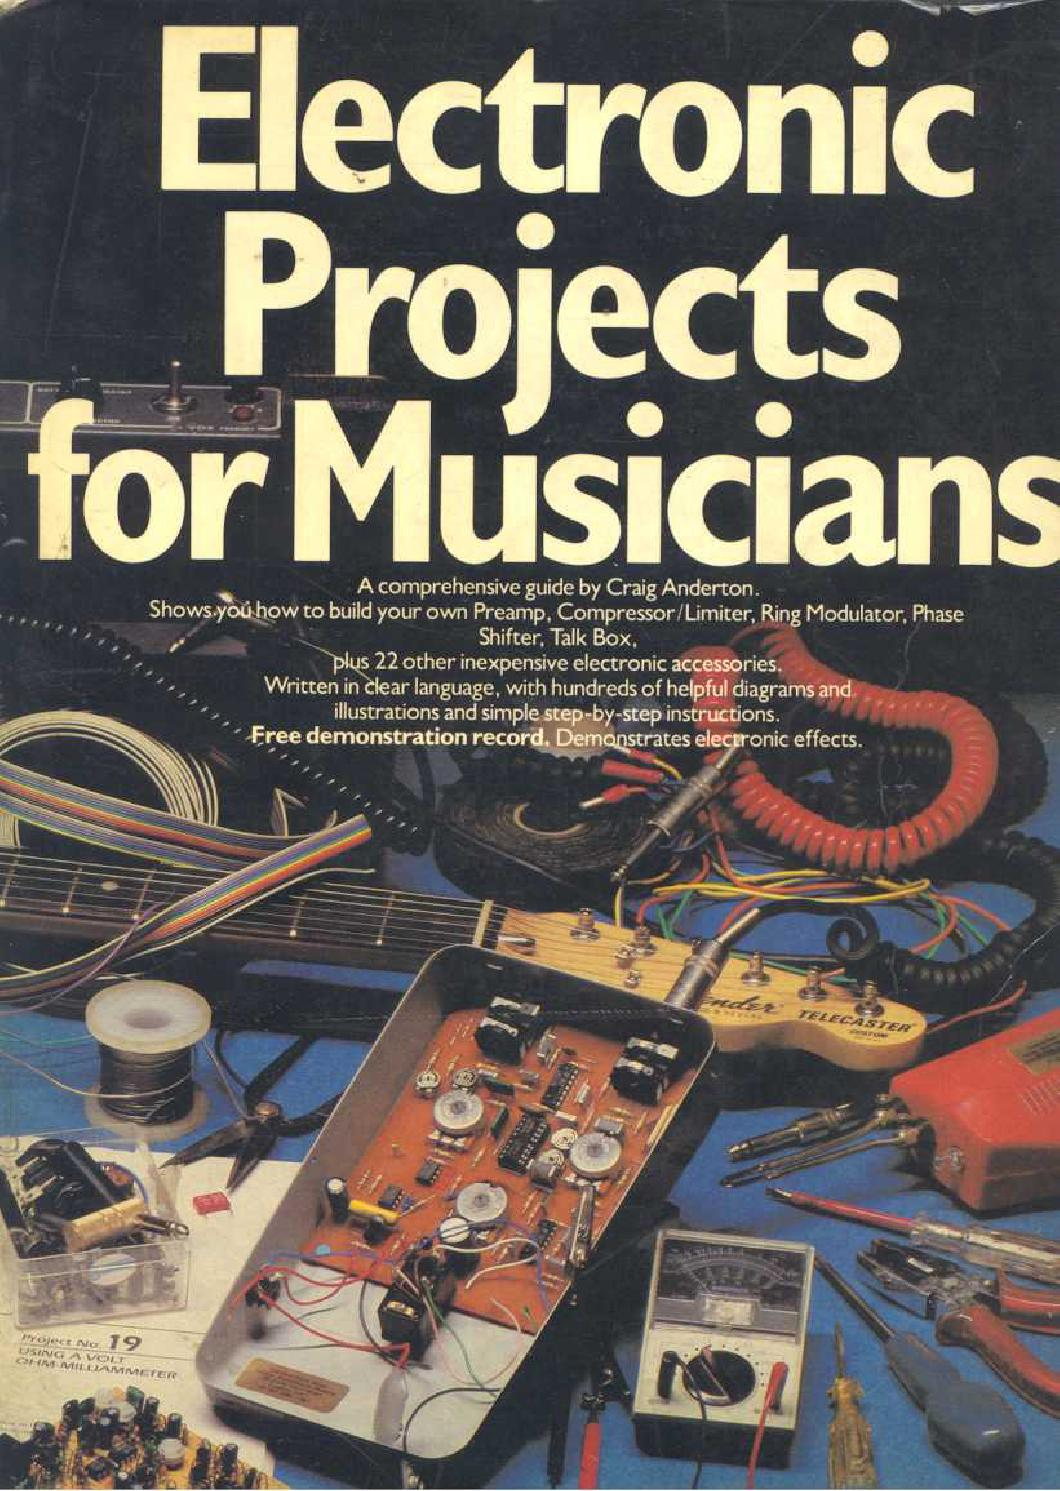 Electronic Projects For Musicians Craig Anderton By Alan Rab Issuu Radio Wiring Diagram